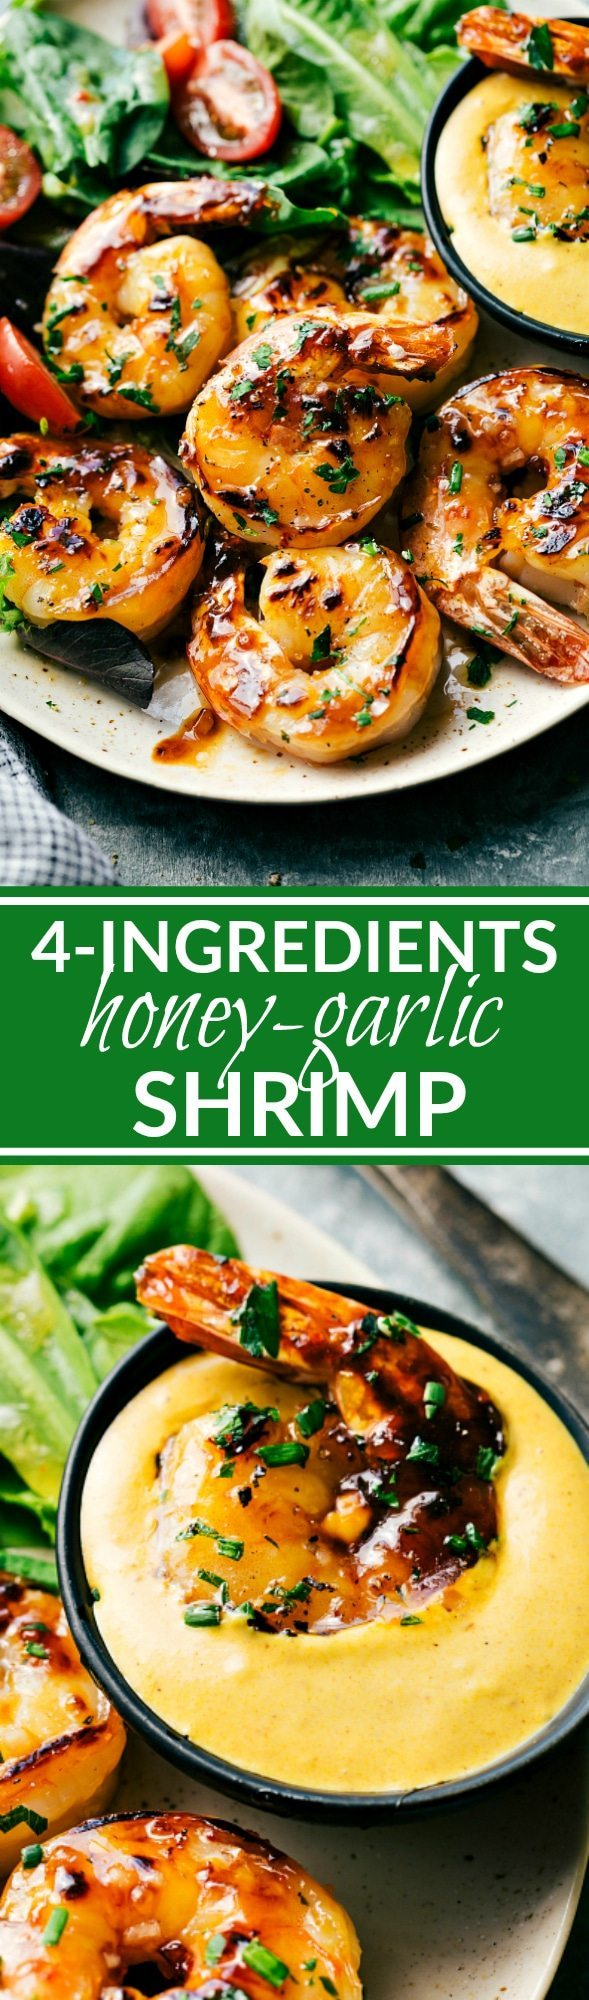 SWEET HONEY GARLIC SHRIMP! The easiest shrimp dish! Only three ingredients double as a marinade and basting sauce to create this ultra-flavorful sweet honey-garlic shrimp. Plus a simple (optional) 3-ingredient dipping sauce! Recipe via chelseasmessyapron.com